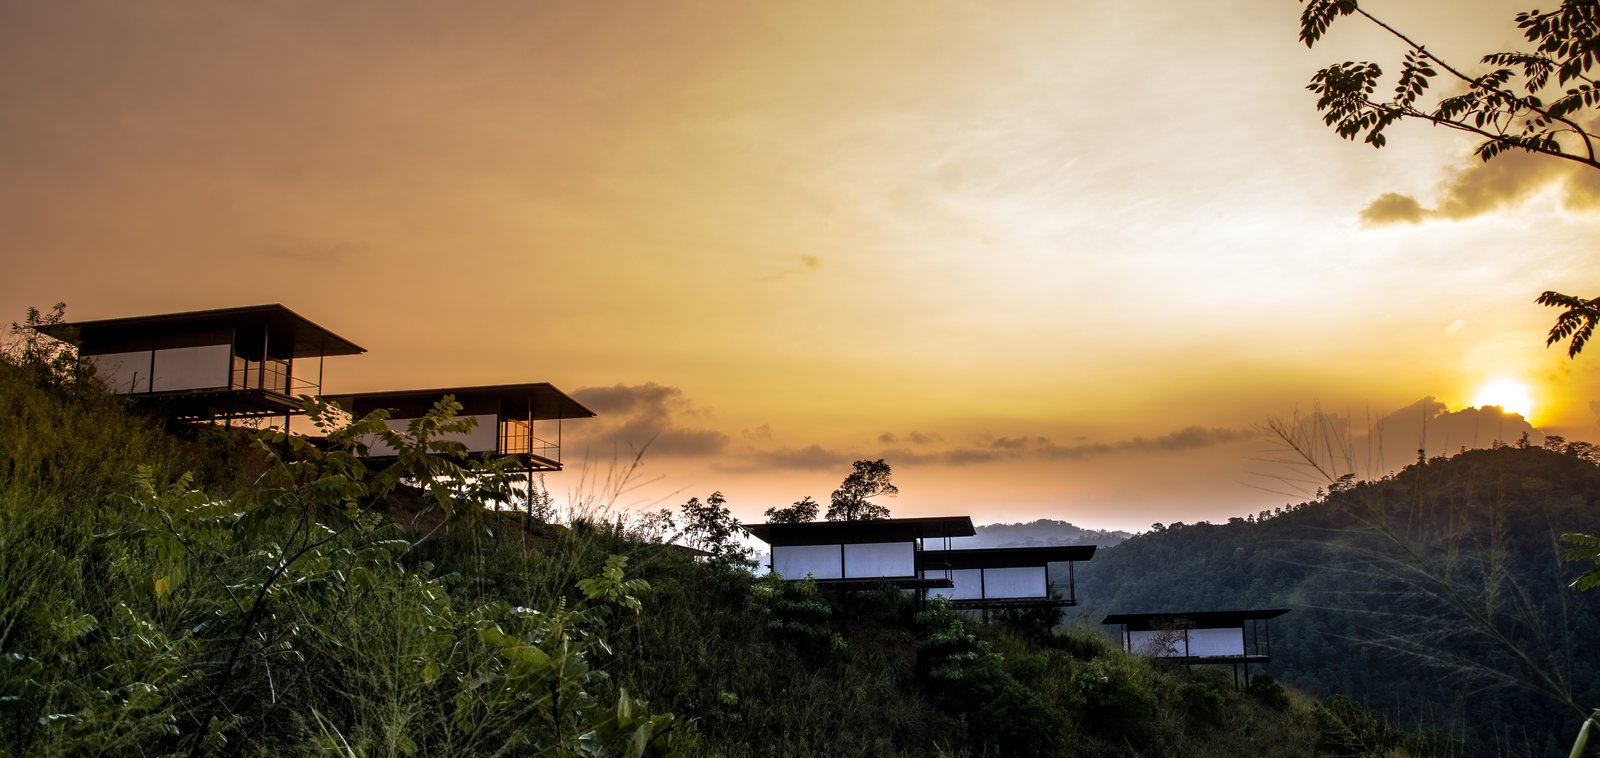 Individual rooms perched on stilts overlooking the valley  Santani Wellness Resort and Spa by vickum